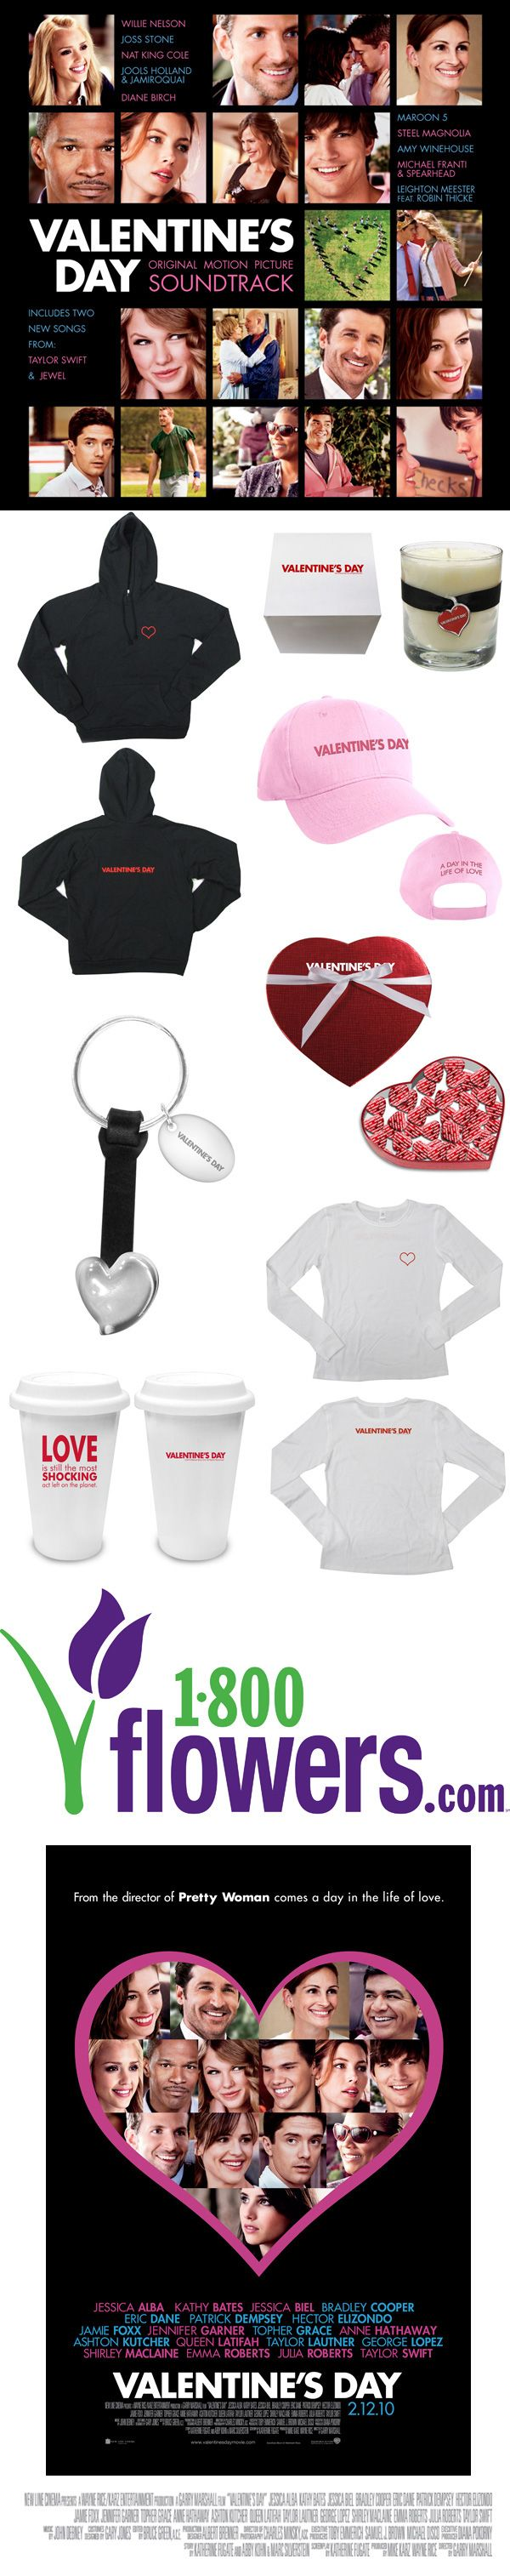 Valentine S Day Giveaway Who Wants Free Swag From The Upcoming